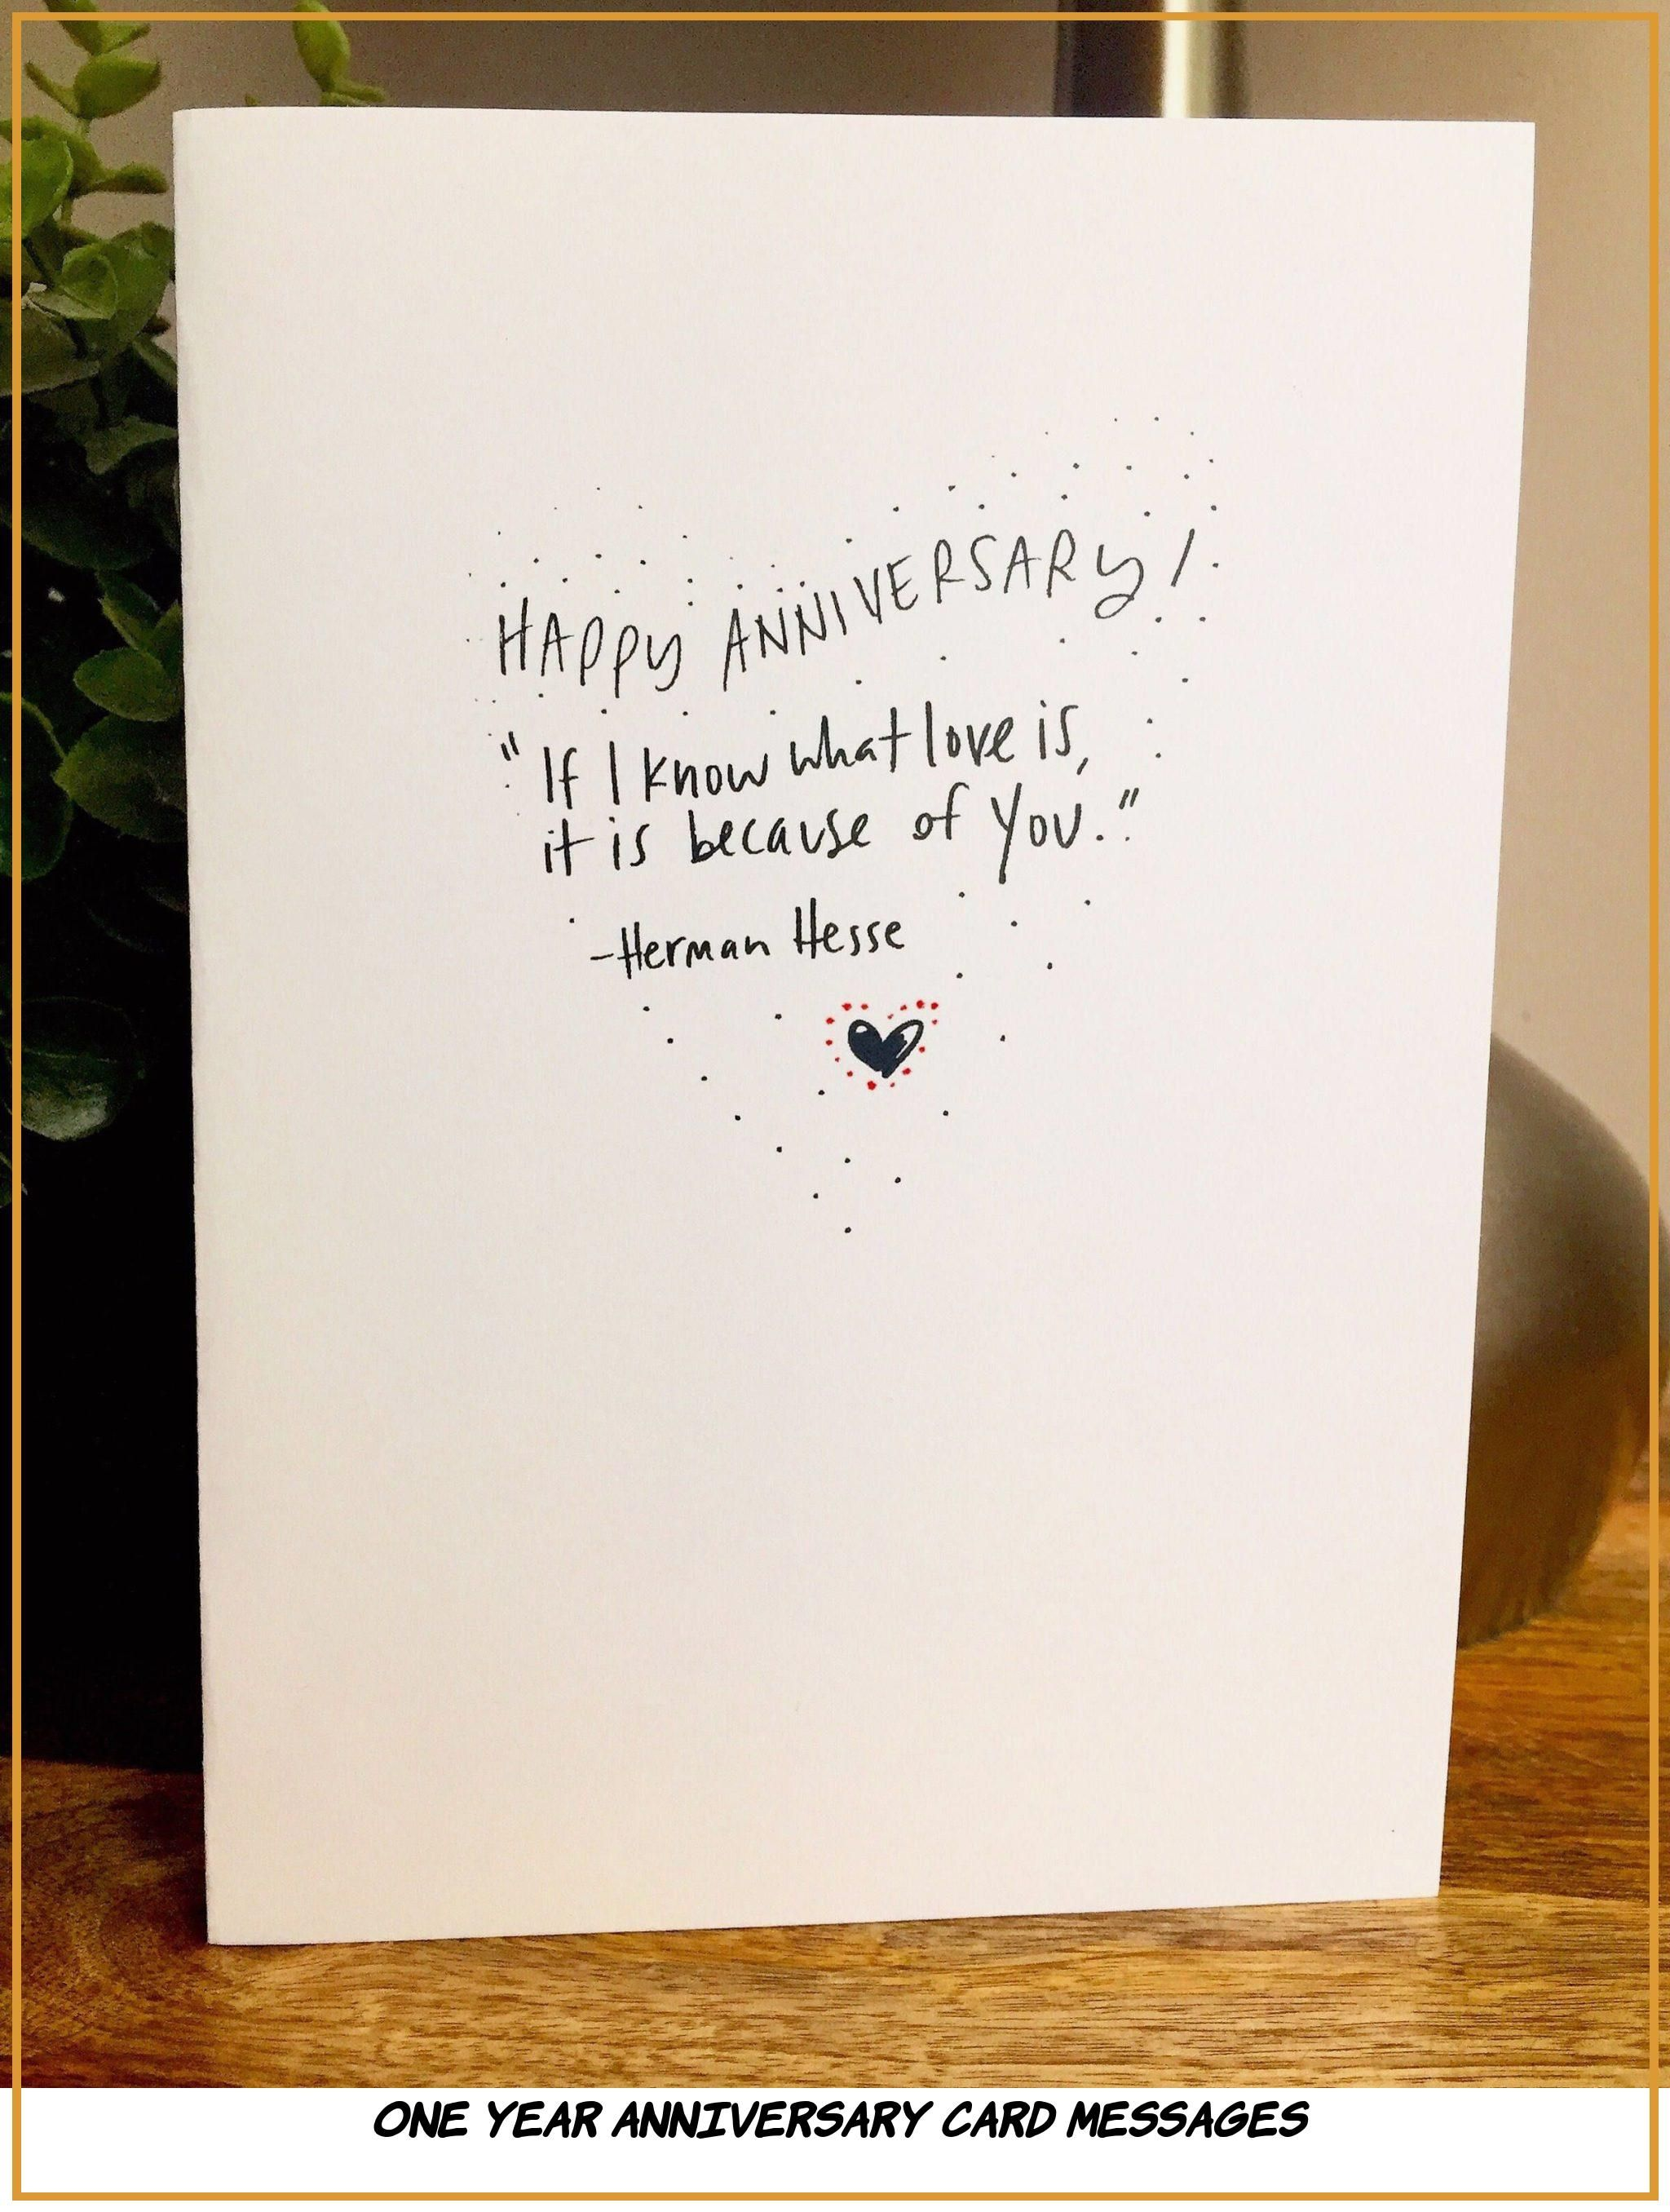 10 Primary One Year Anniversary Card Messages Anniversary Card Messages Anniversary Cards One Year Anniversary